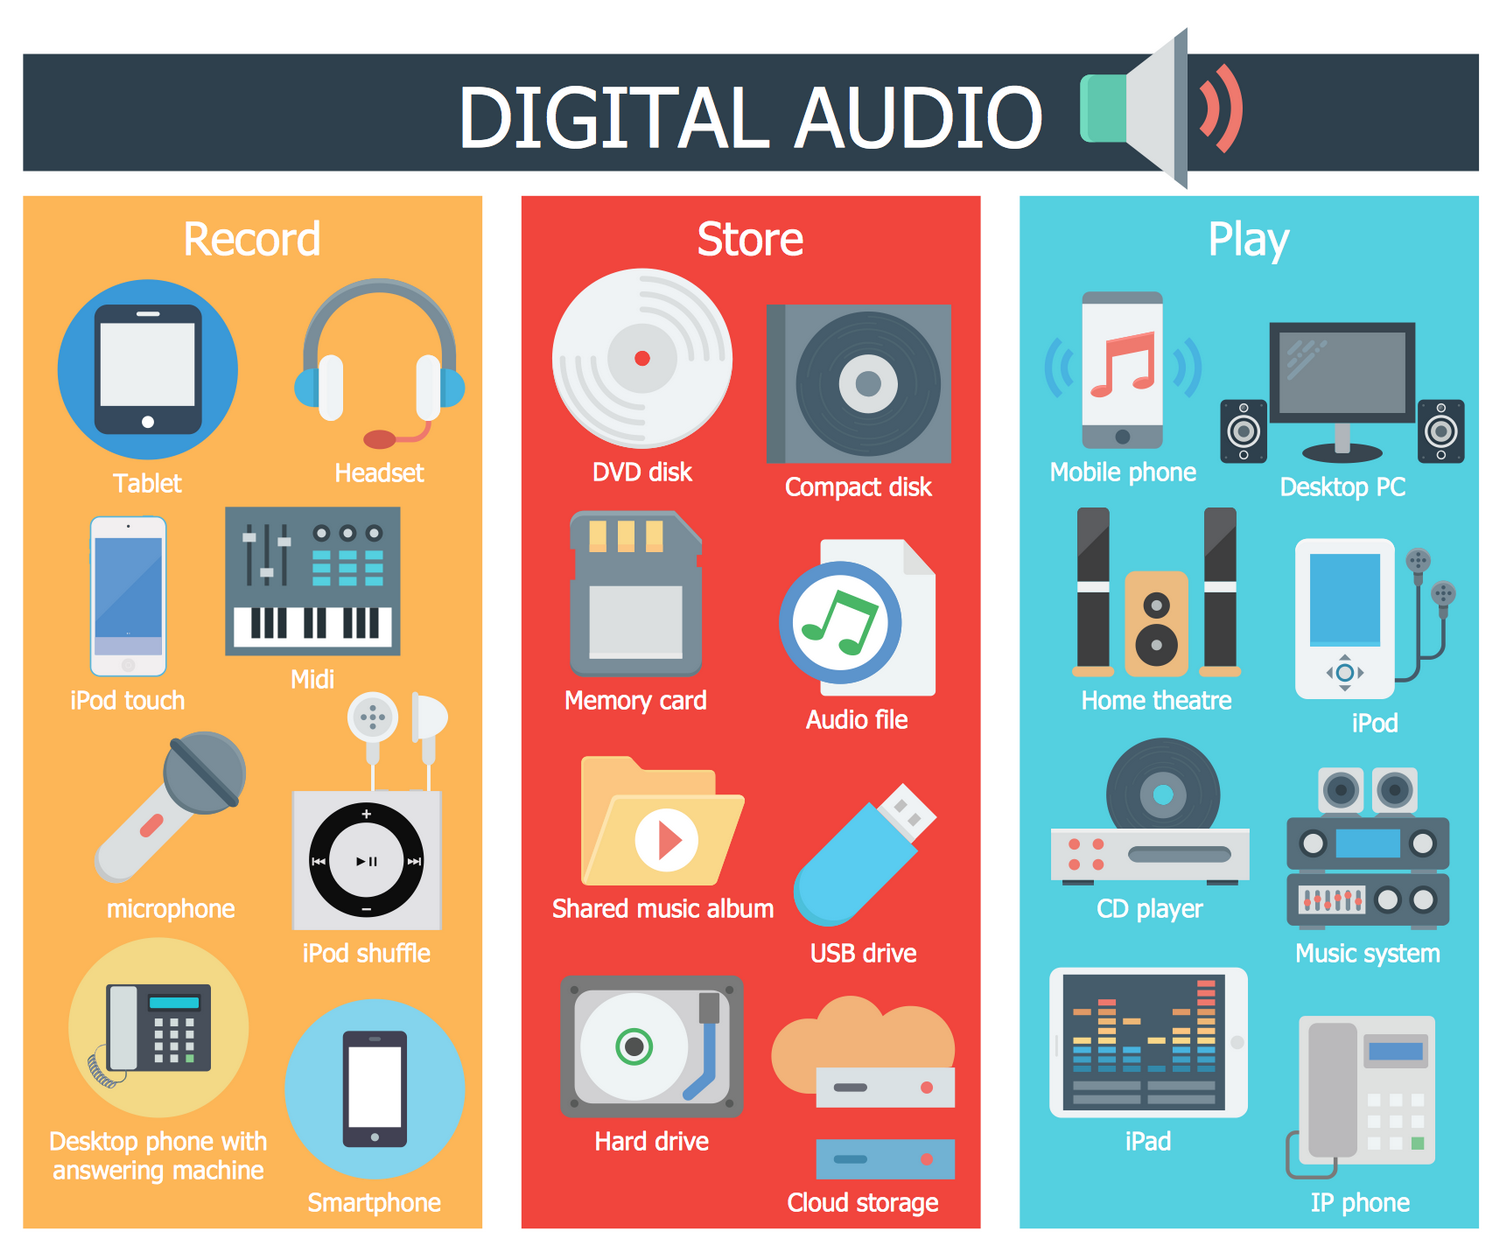 IIllustration Audio, Video, Media Example - Digital Audio